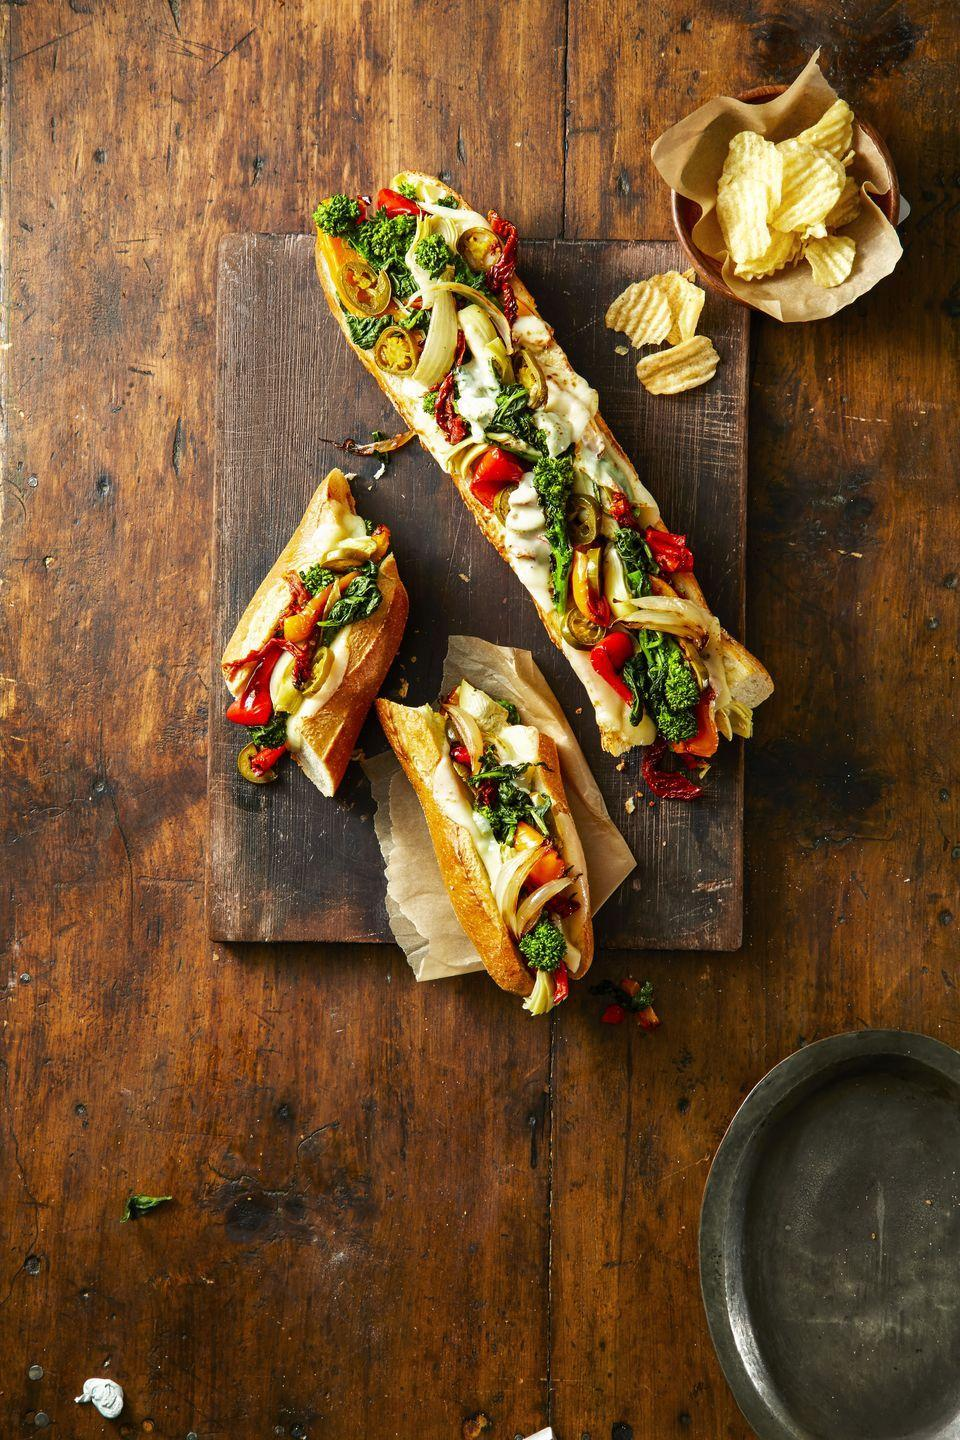 """<p>These party-friendly sandwiches are fully loaded with tons of cheese and veggies that guests won't even miss the meat. </p><p><em><a href=""""https://www.goodhousekeeping.com/food-recipes/a42217/provolone-veggie-party-subs-recipe/"""" rel=""""nofollow noopener"""" target=""""_blank"""" data-ylk=""""slk:Get the recipe for Provolone Veggie Party Subs »"""" class=""""link rapid-noclick-resp""""><span class=""""redactor-invisible-space""""><span class=""""redactor-invisible-space""""><em>Get the recipe for Provolone Veggie Party Subs »</em></span></span></a></em><br></p>"""